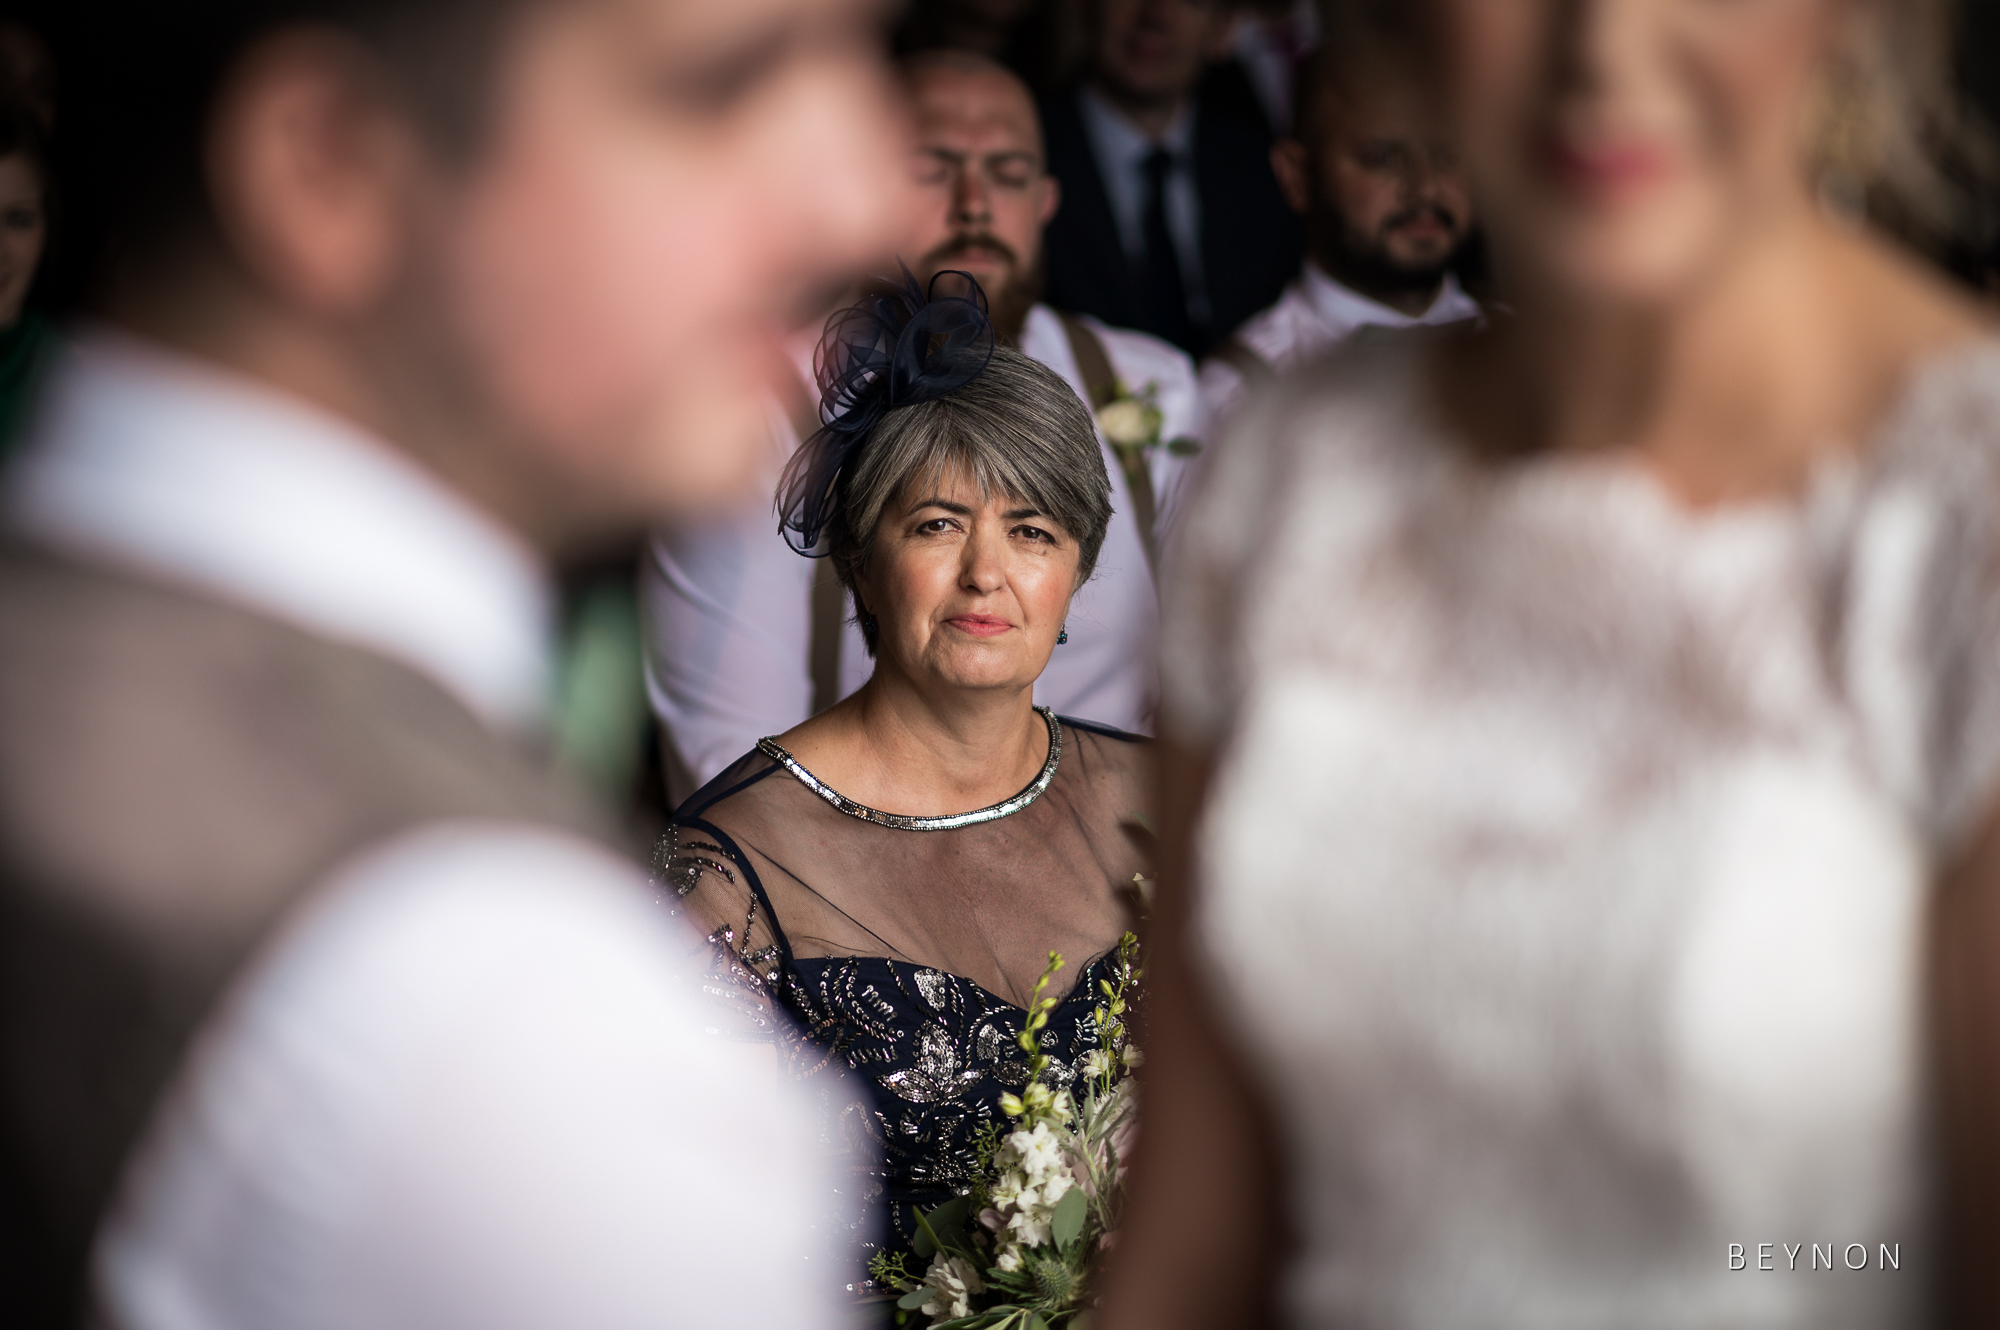 The bride's mother looks on